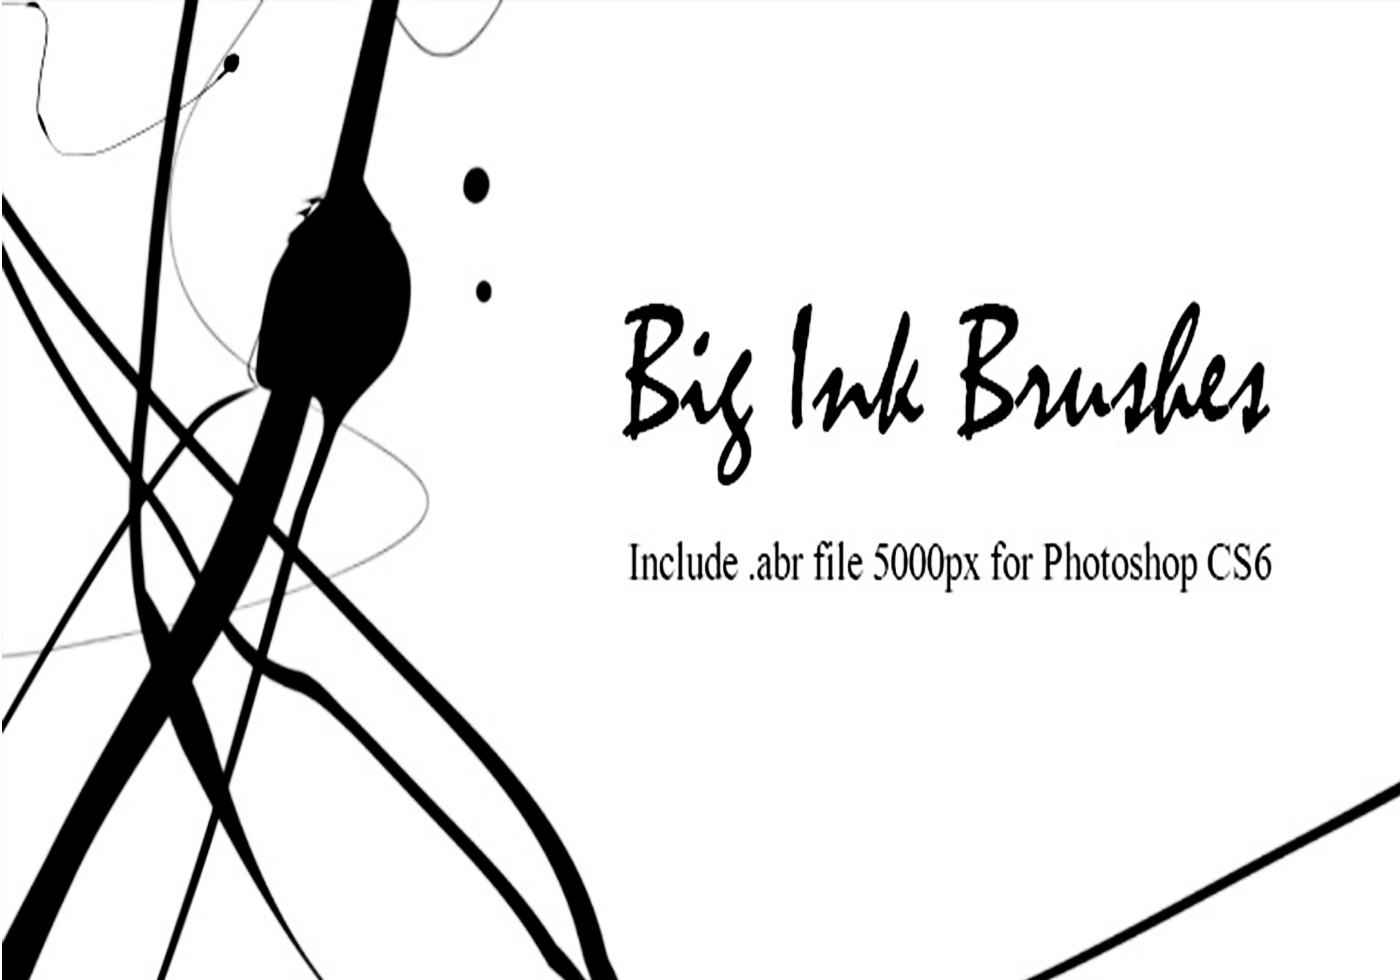 10 Big Ink Brushes Free Brushes At